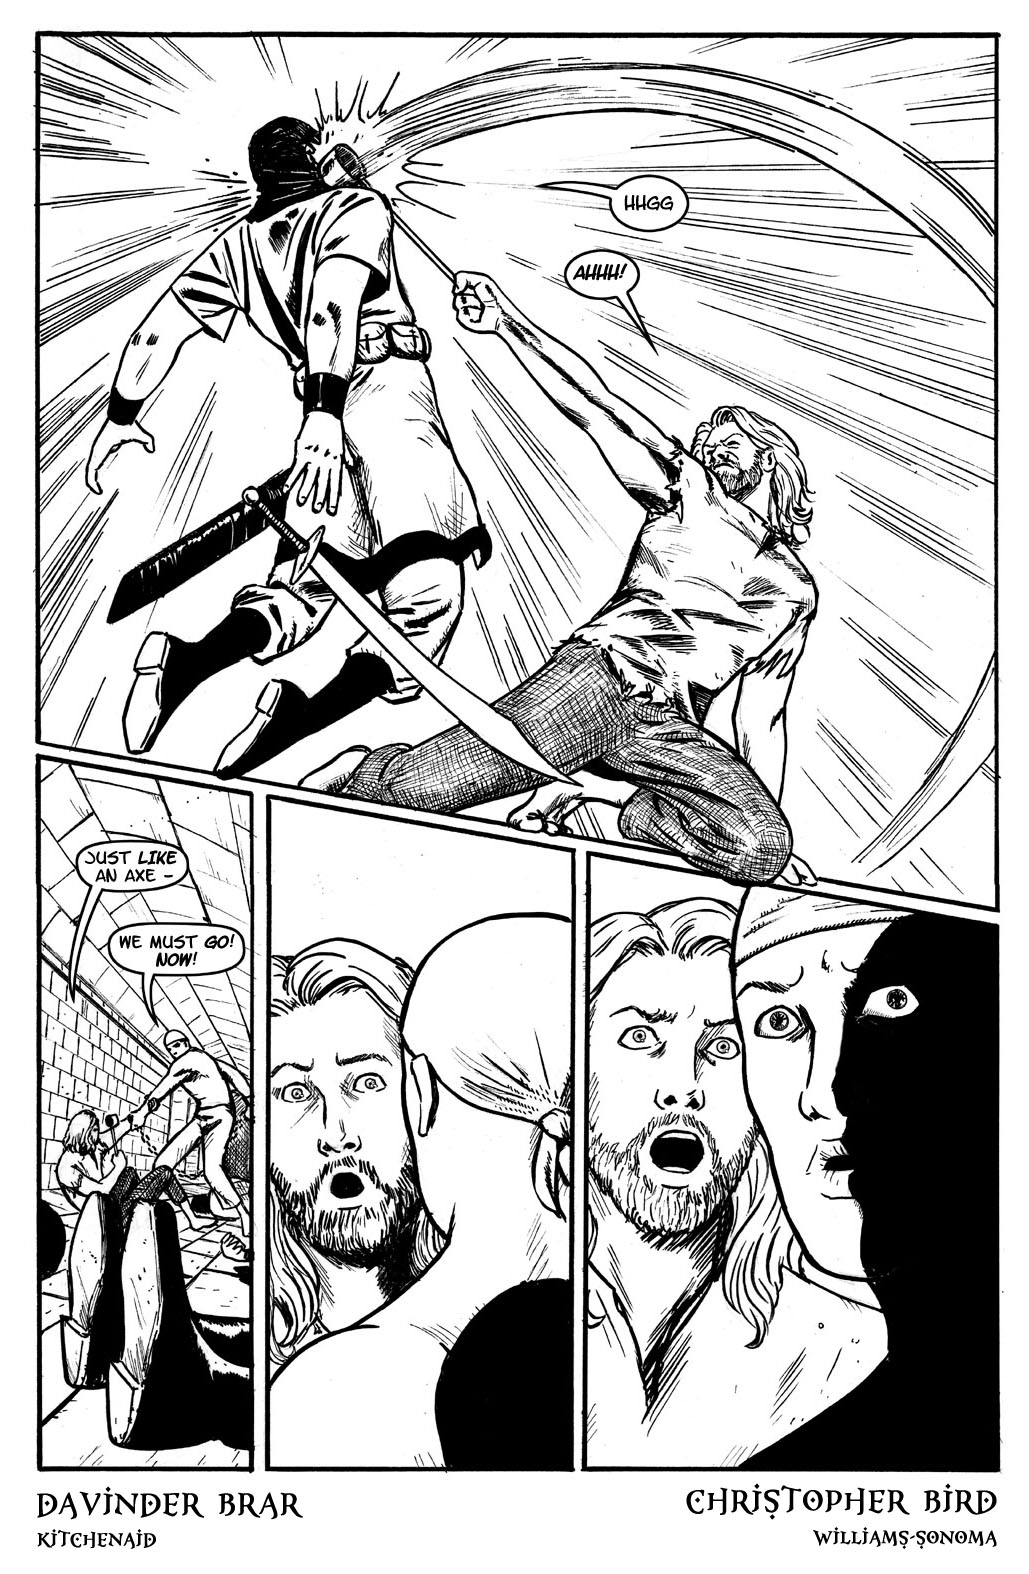 Book 2, page 18